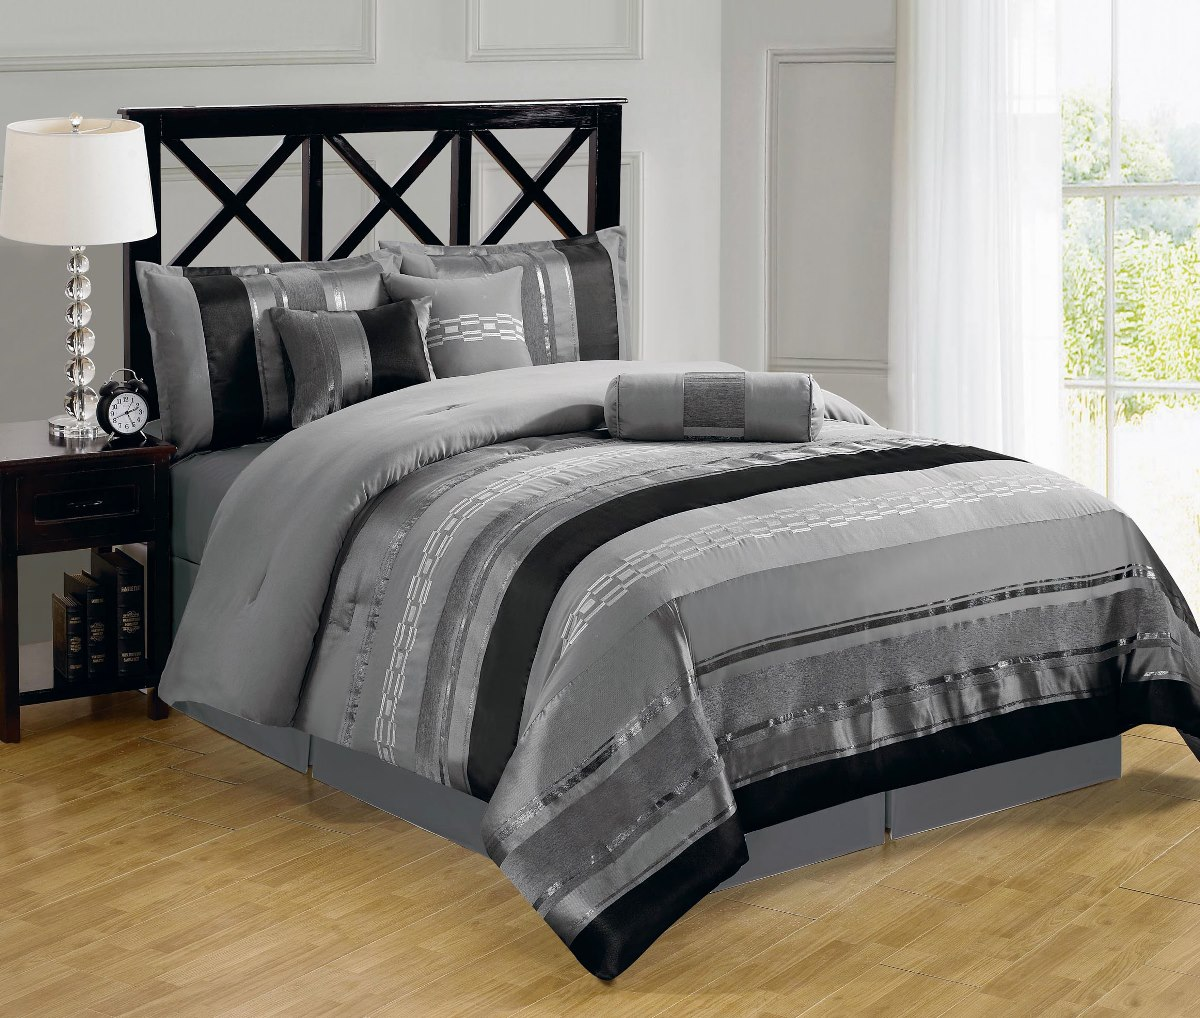 Bedroom Using Luxury Comforter Sets For Wonderful Bedroom